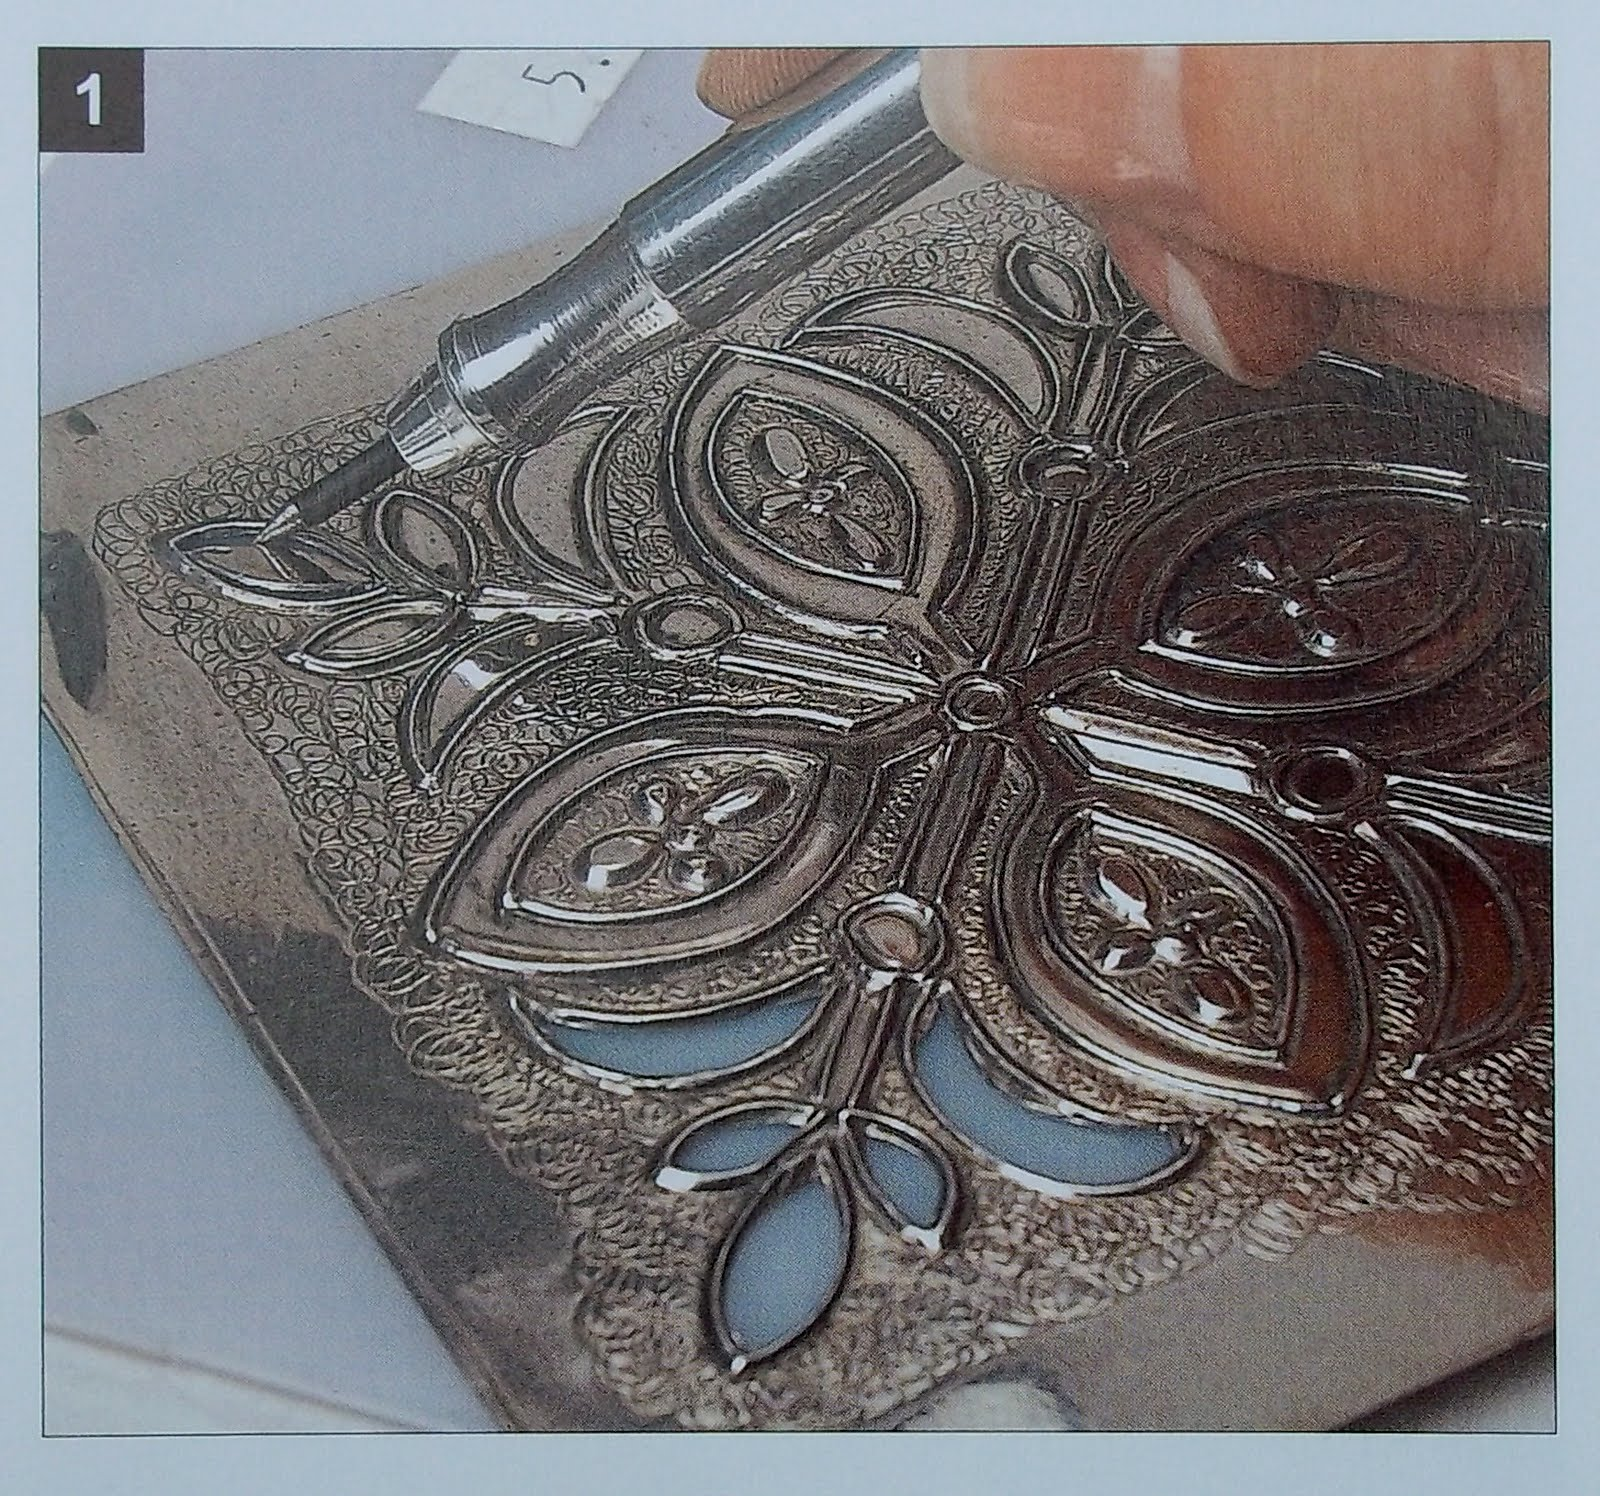 Metal embossing services from Advantage Fabricated Metals